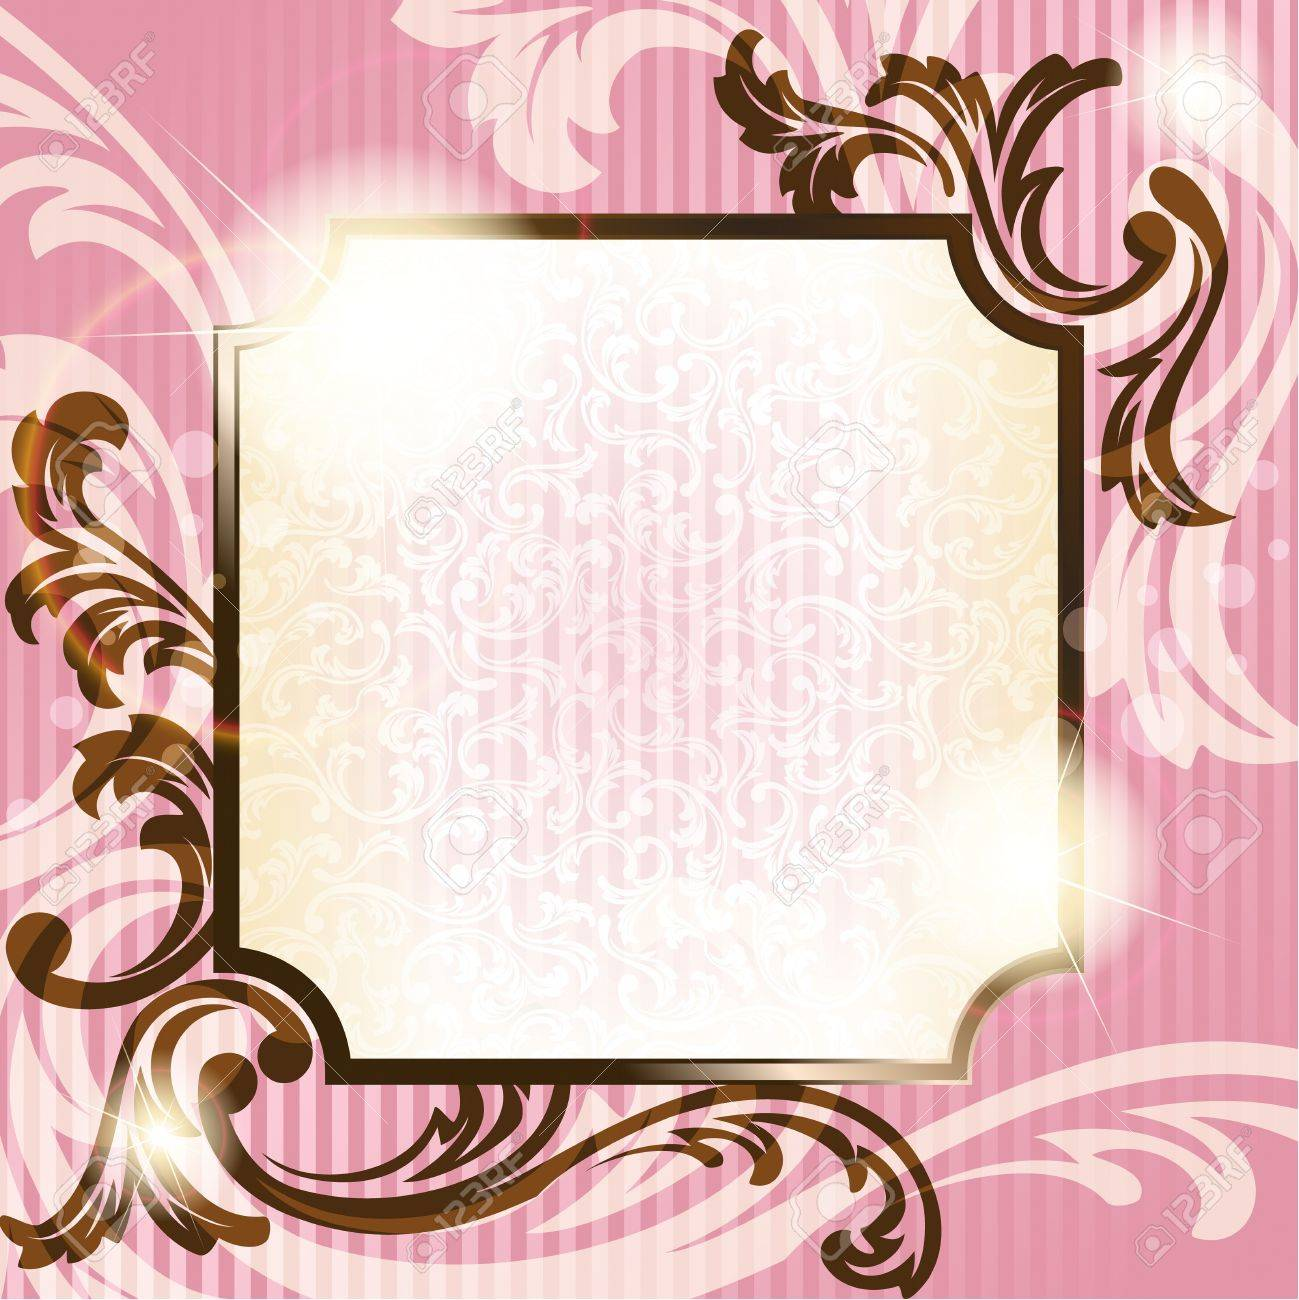 9825522 elegant pink and brown transparent background design inspired by french rococo style graphics are gr